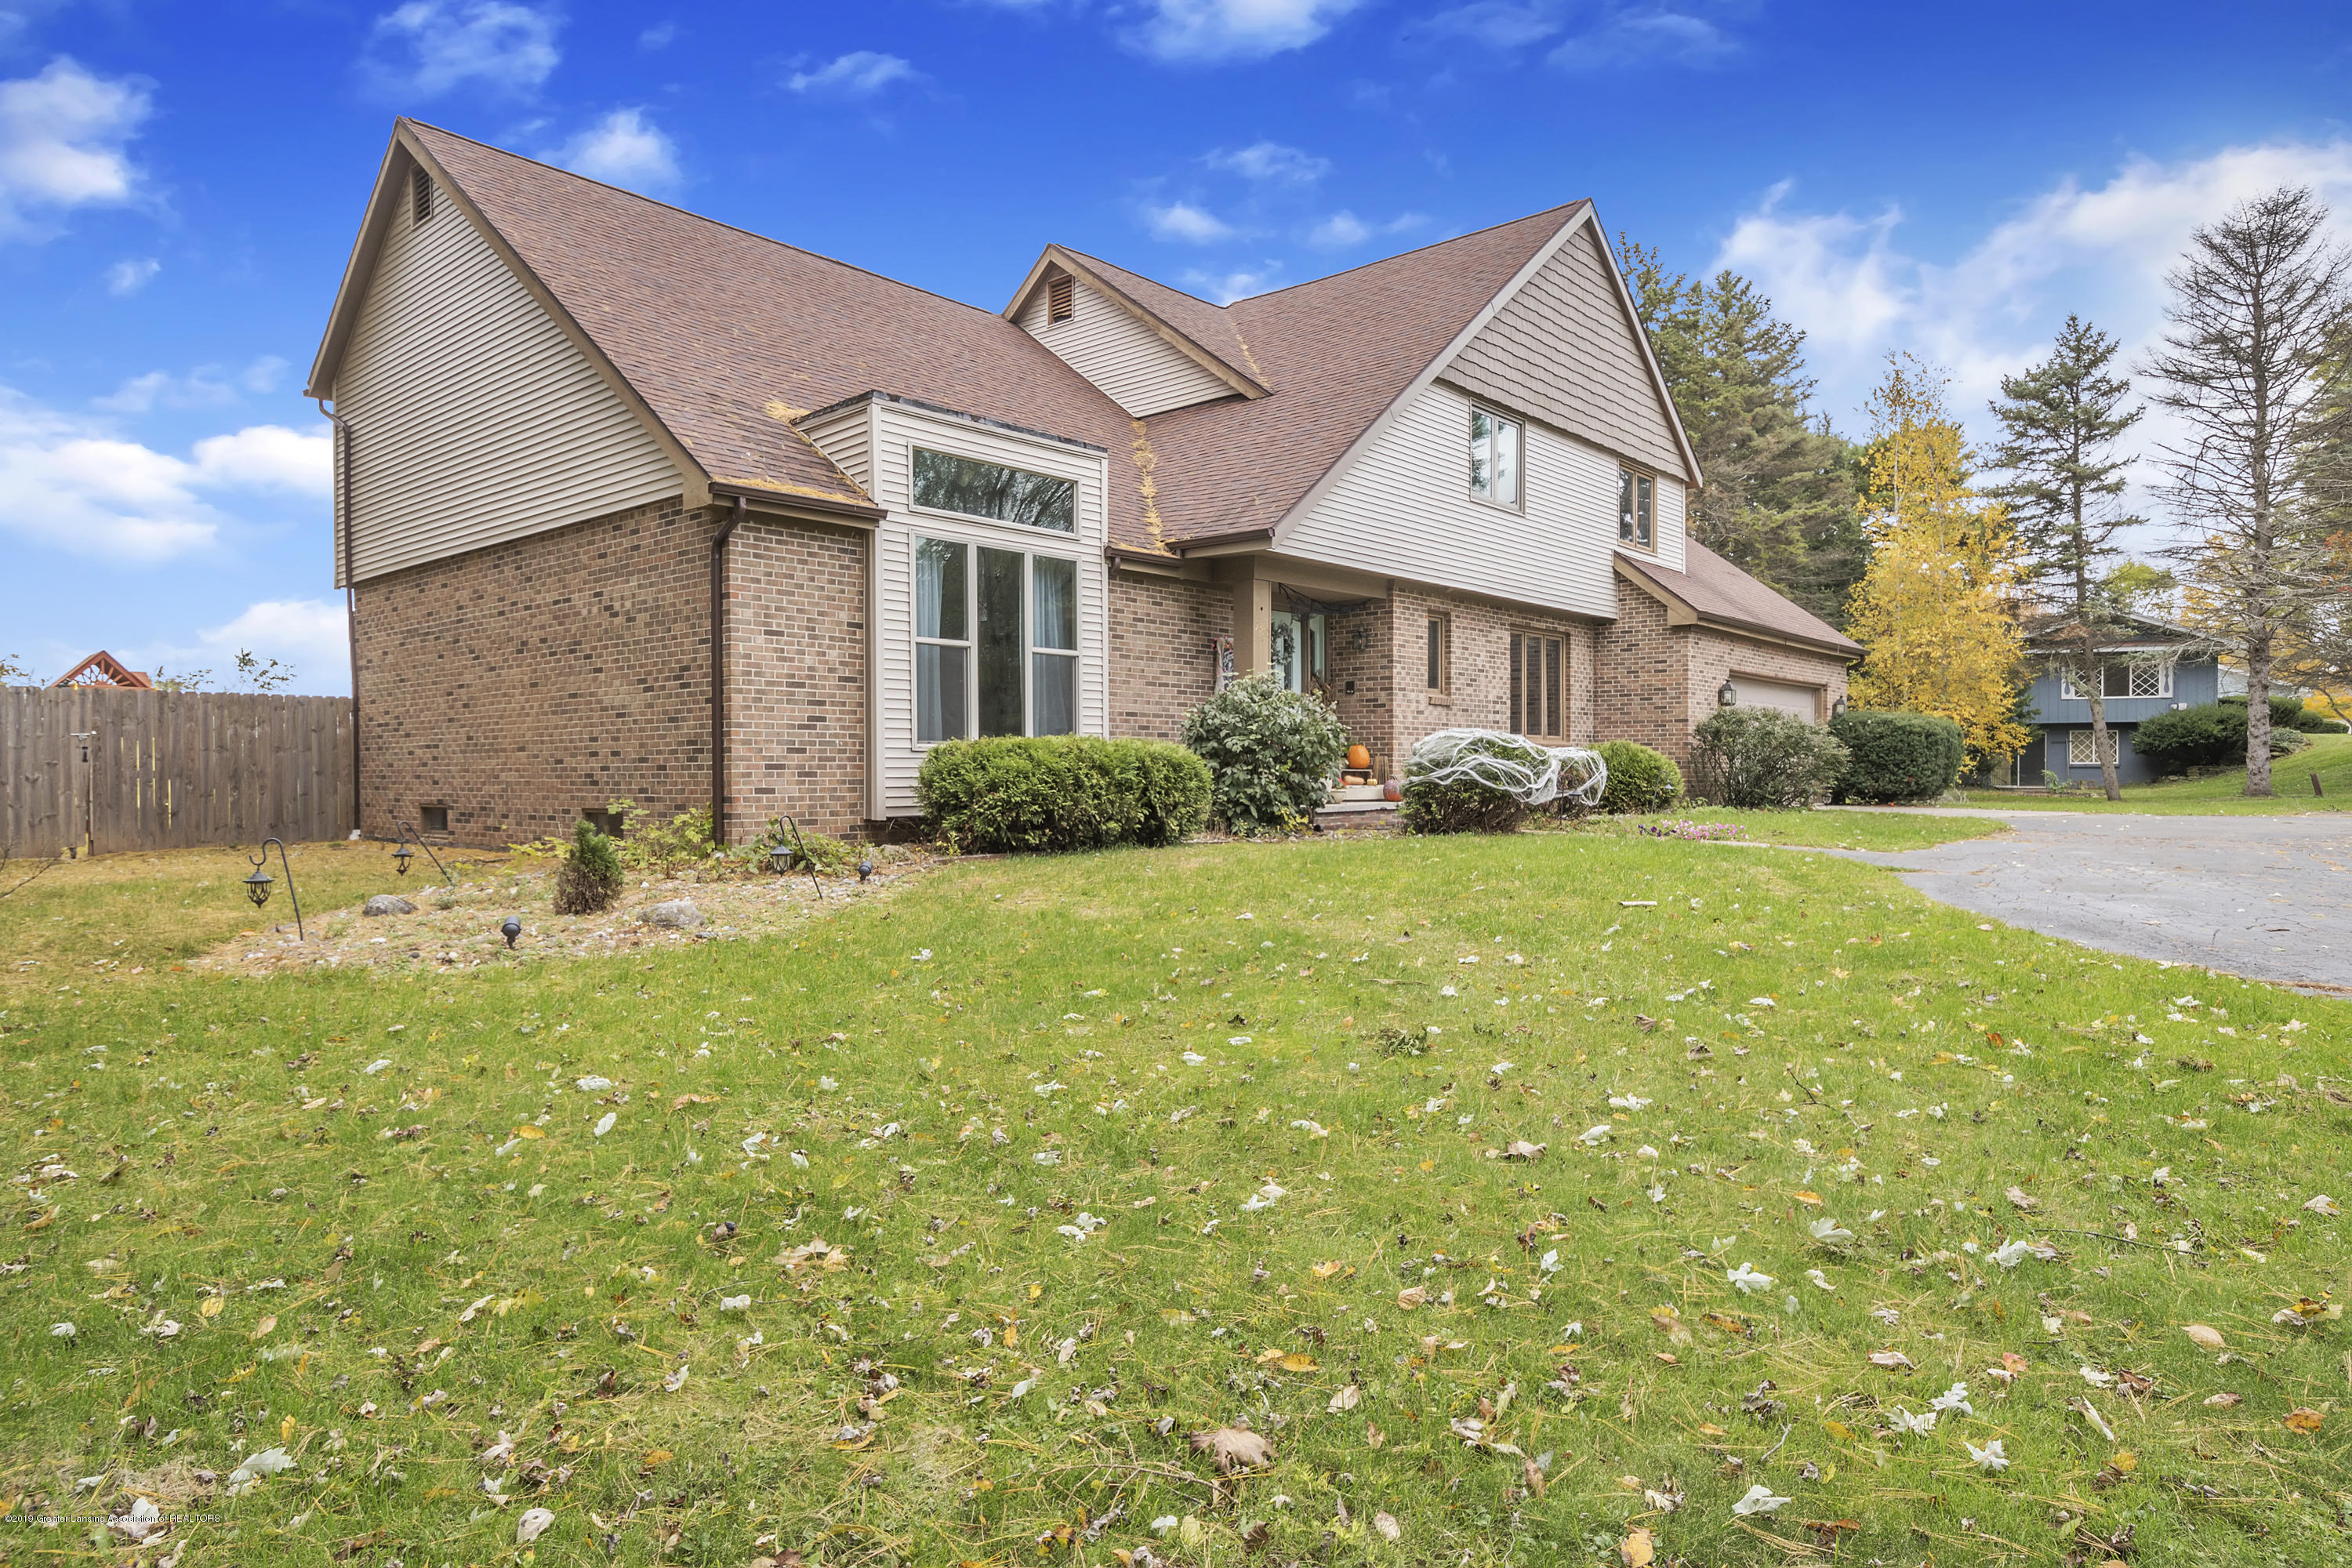 9330 Looking Glass Brook Dr - 9330-Looking-Glass-Brook-Grand-Ledge-win - 48